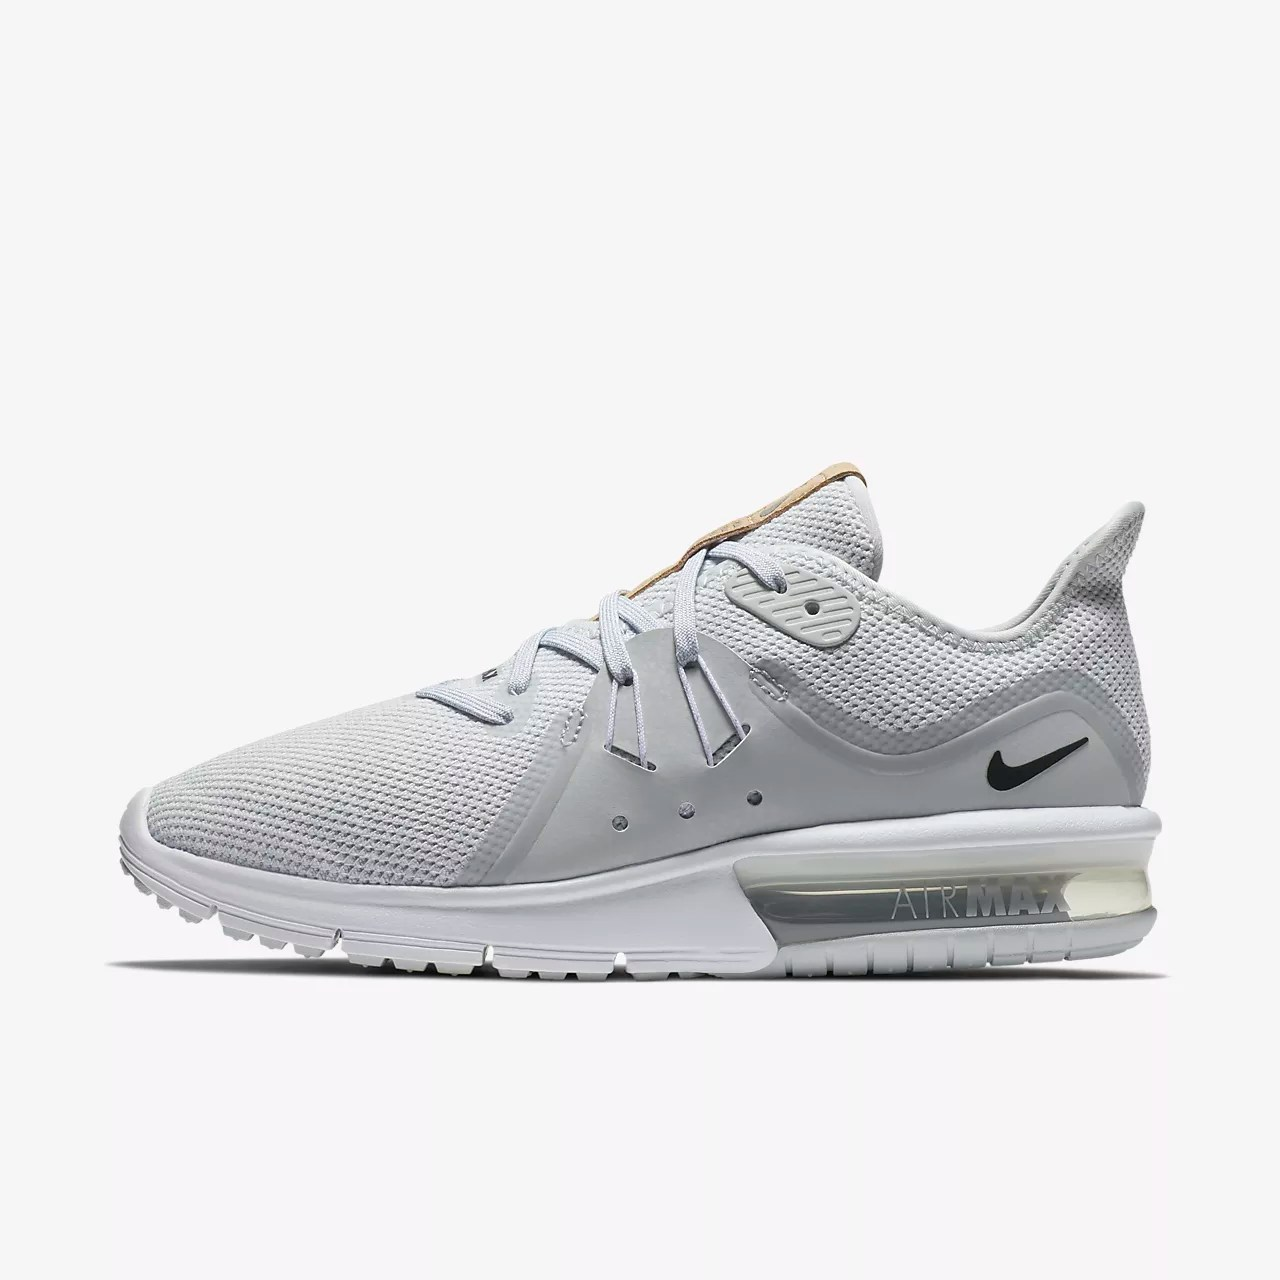 Nike Patike Nike Air Max Sequent 3 Women S Shoe